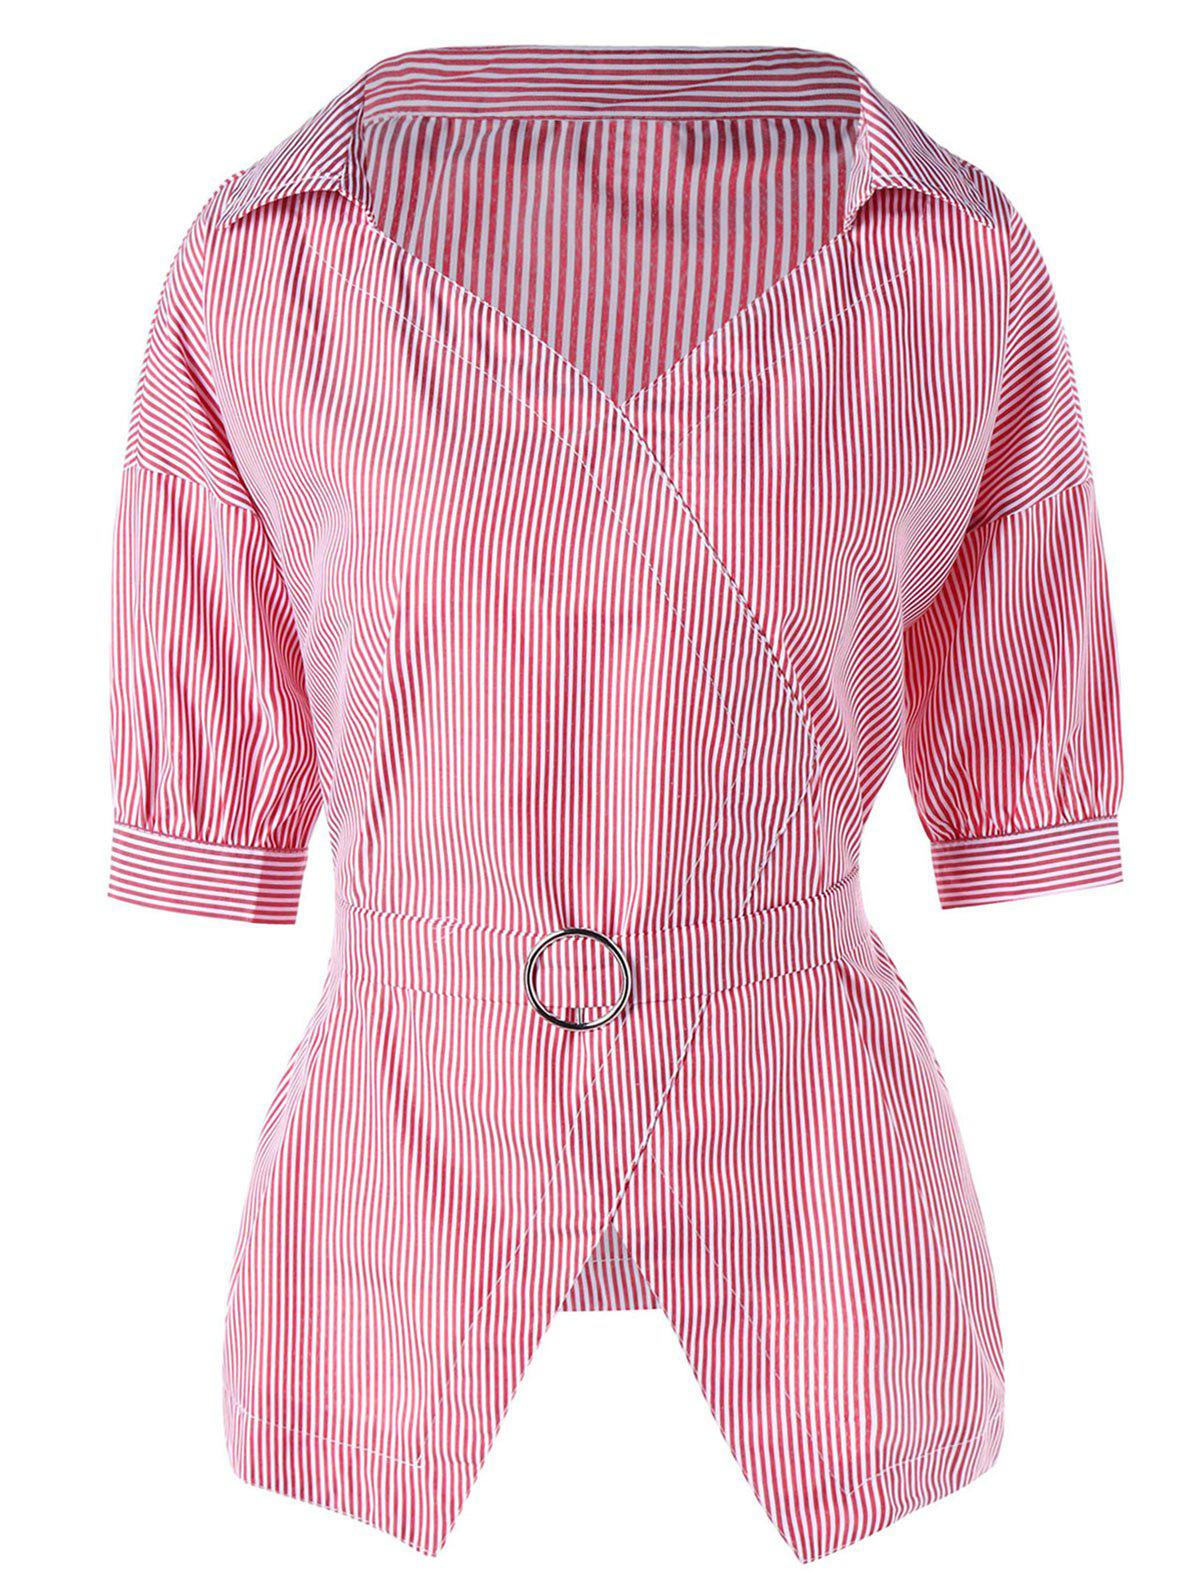 Cravate Cravate à rayures Peplum Blouse - ROSE PÂLE 2XL